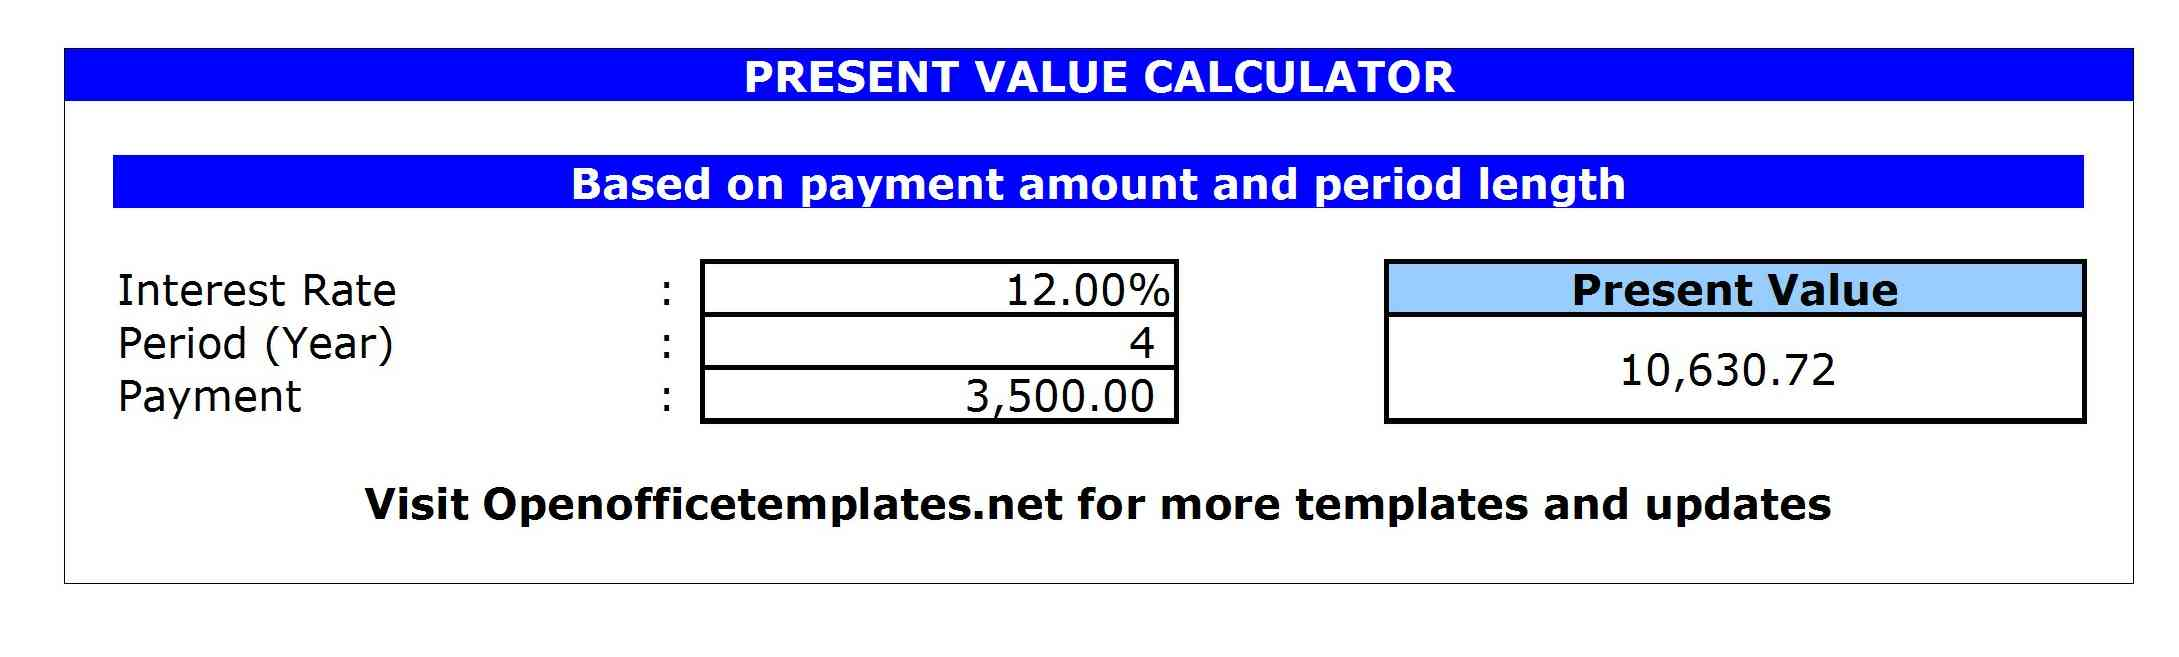 Present-Value-Calculator